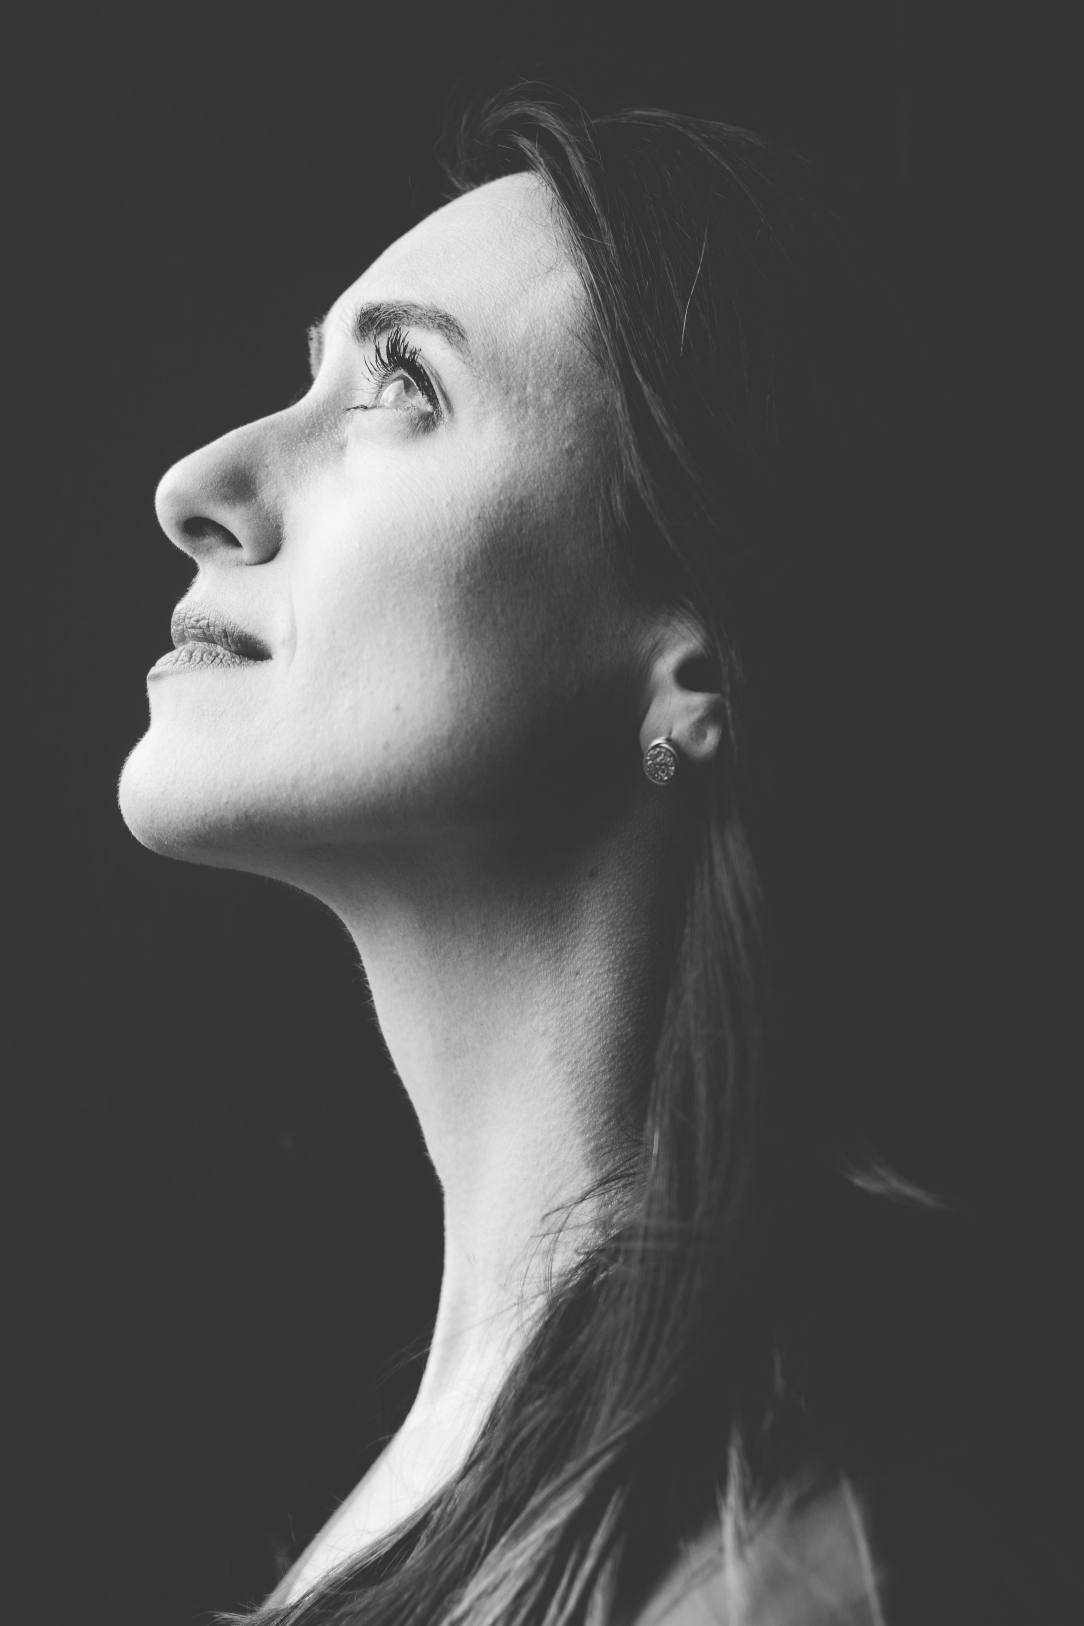 Woman looking up- Just do the next right thing - empowering me